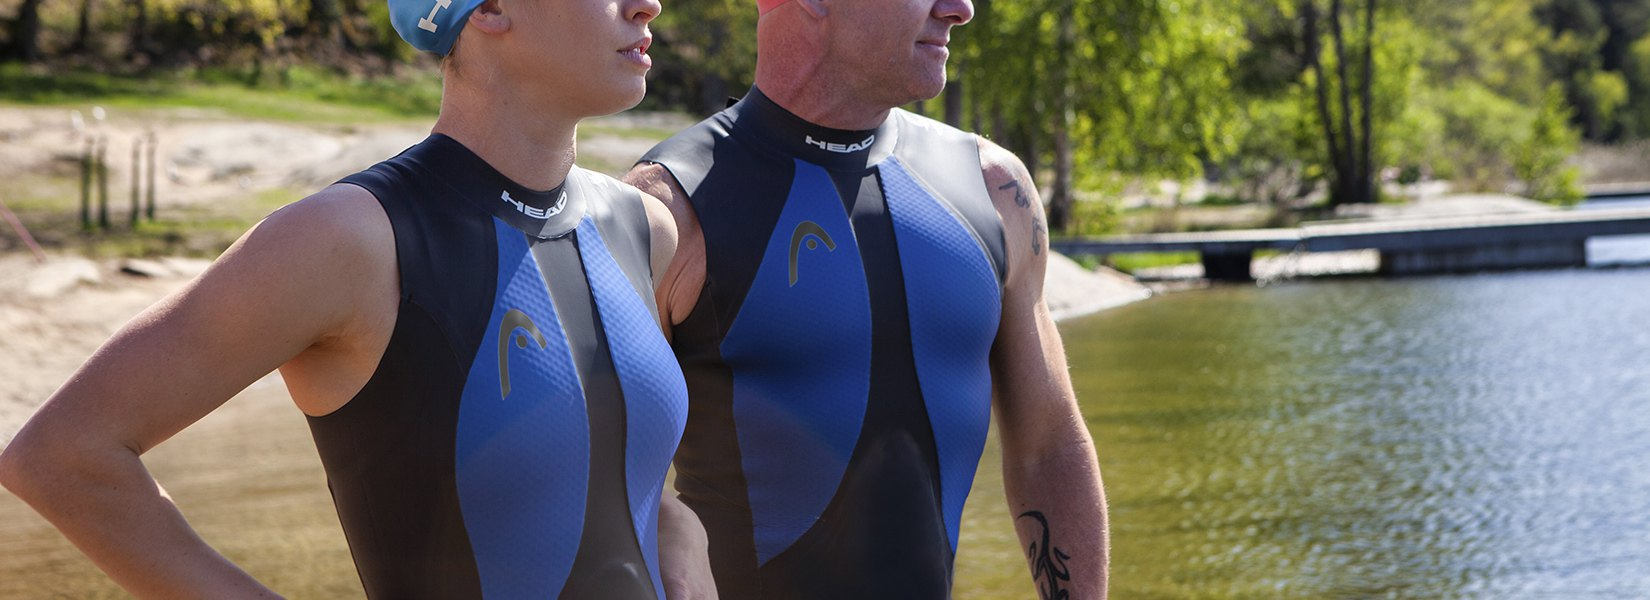 Get your perfect wetsuit!